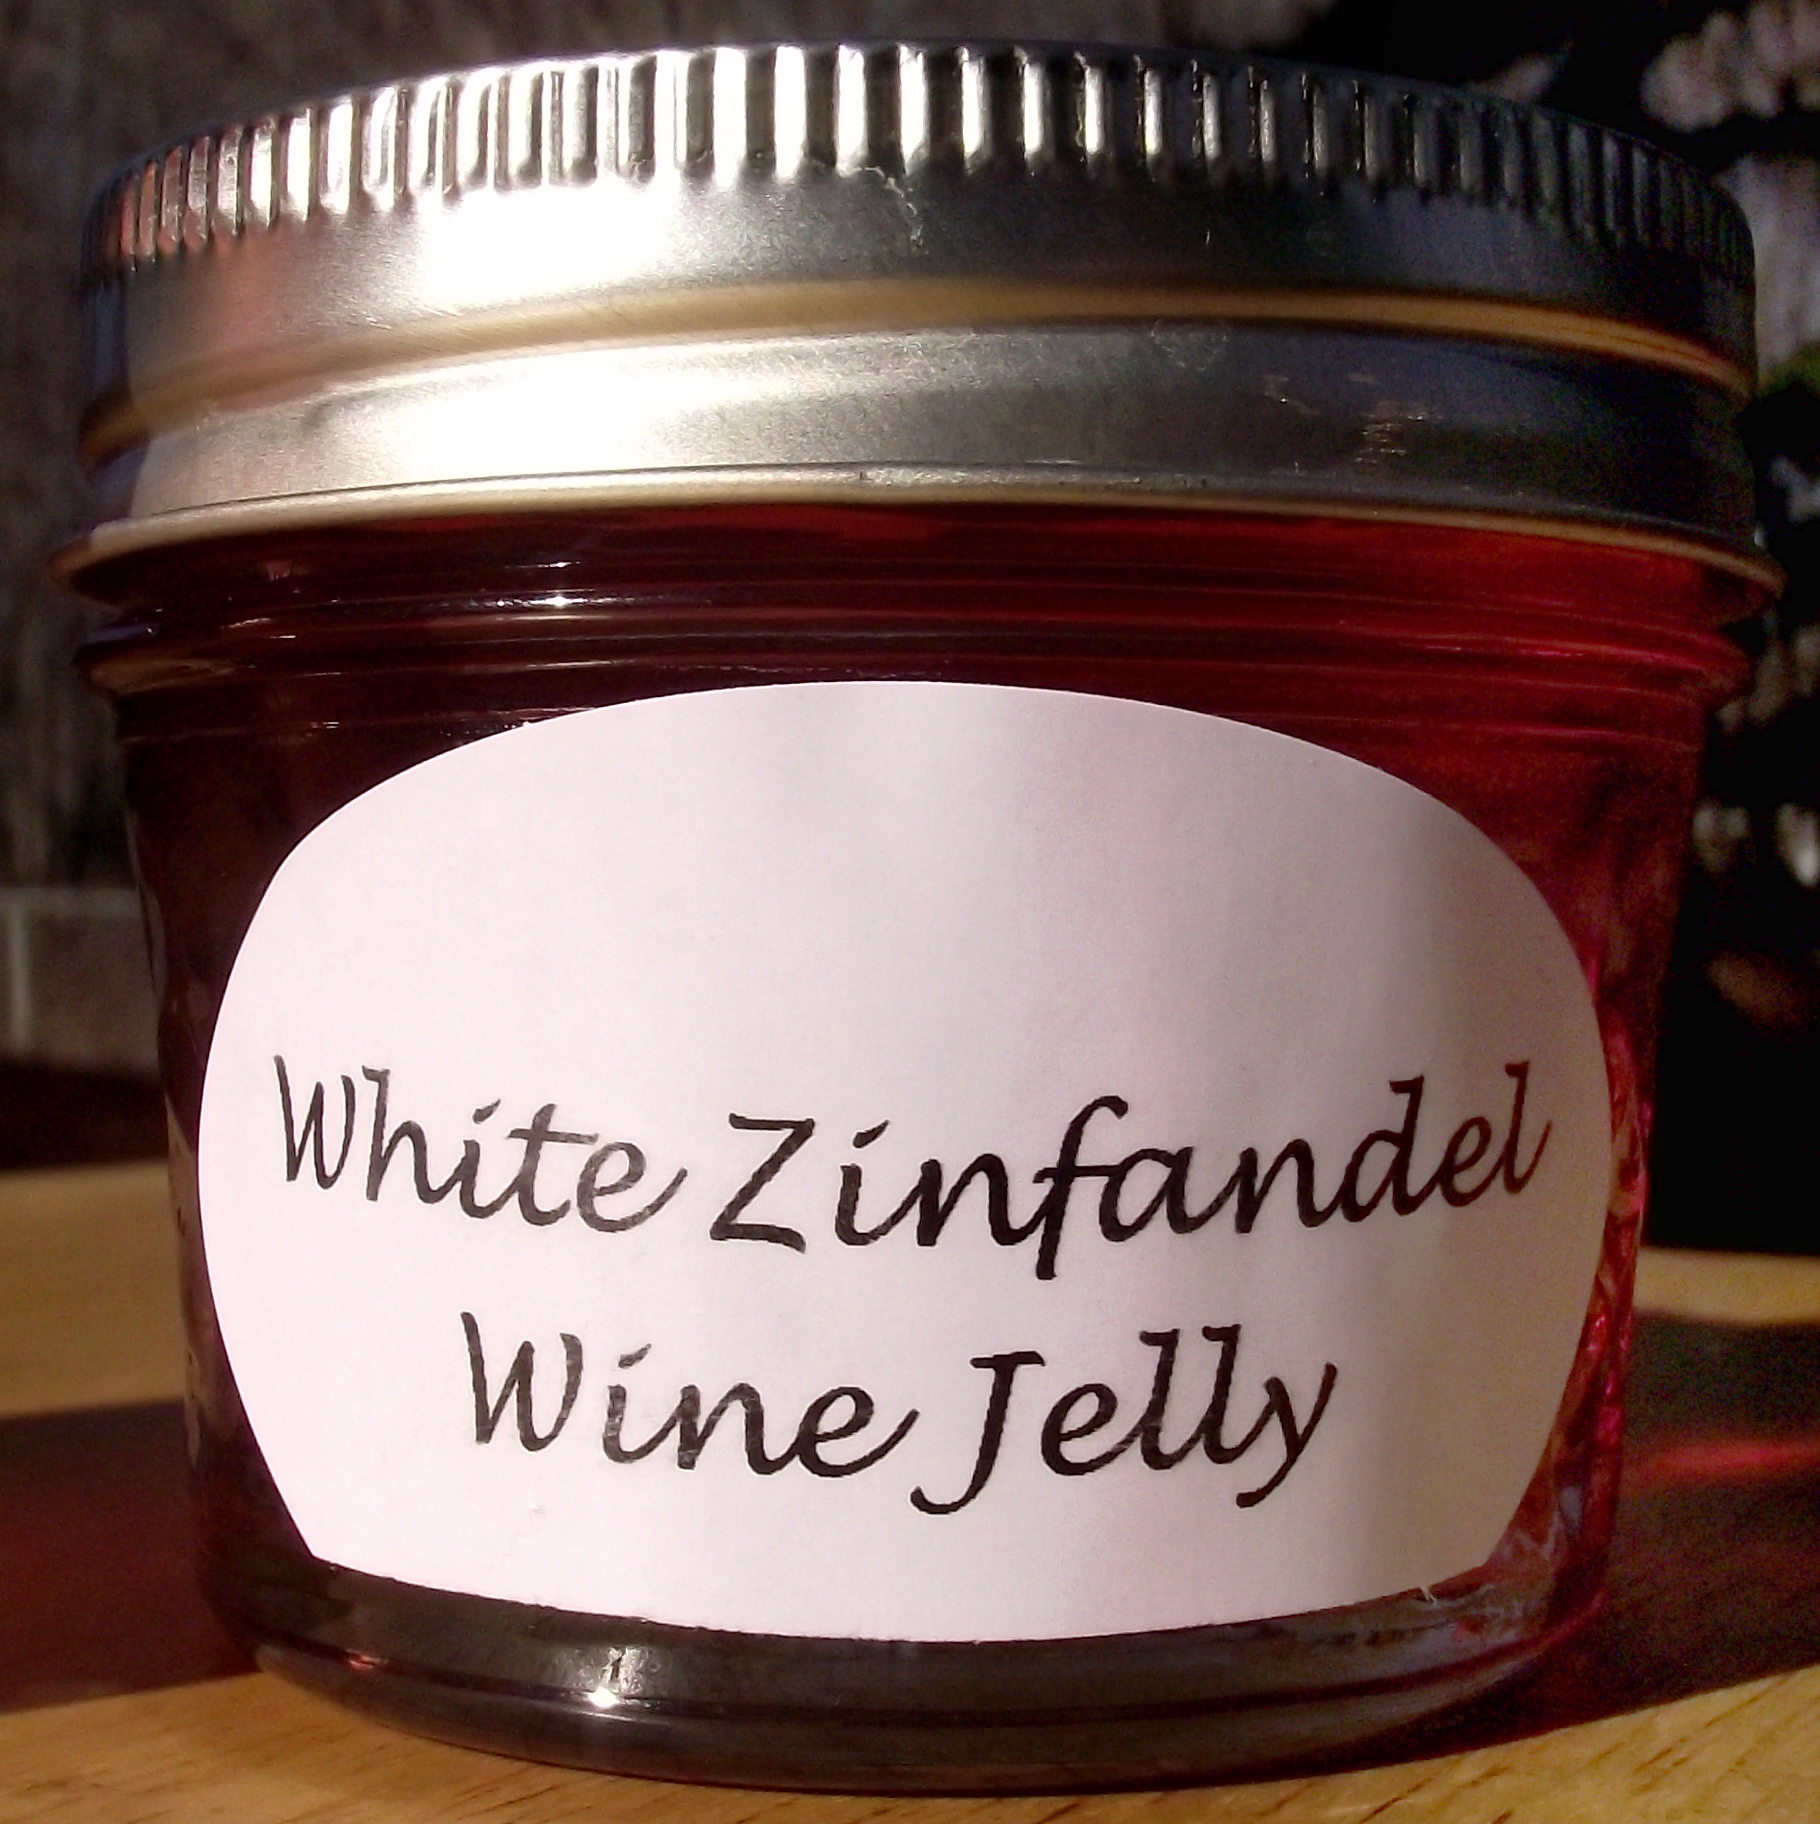 White Zinfandel Wine Jelly via Storenvy